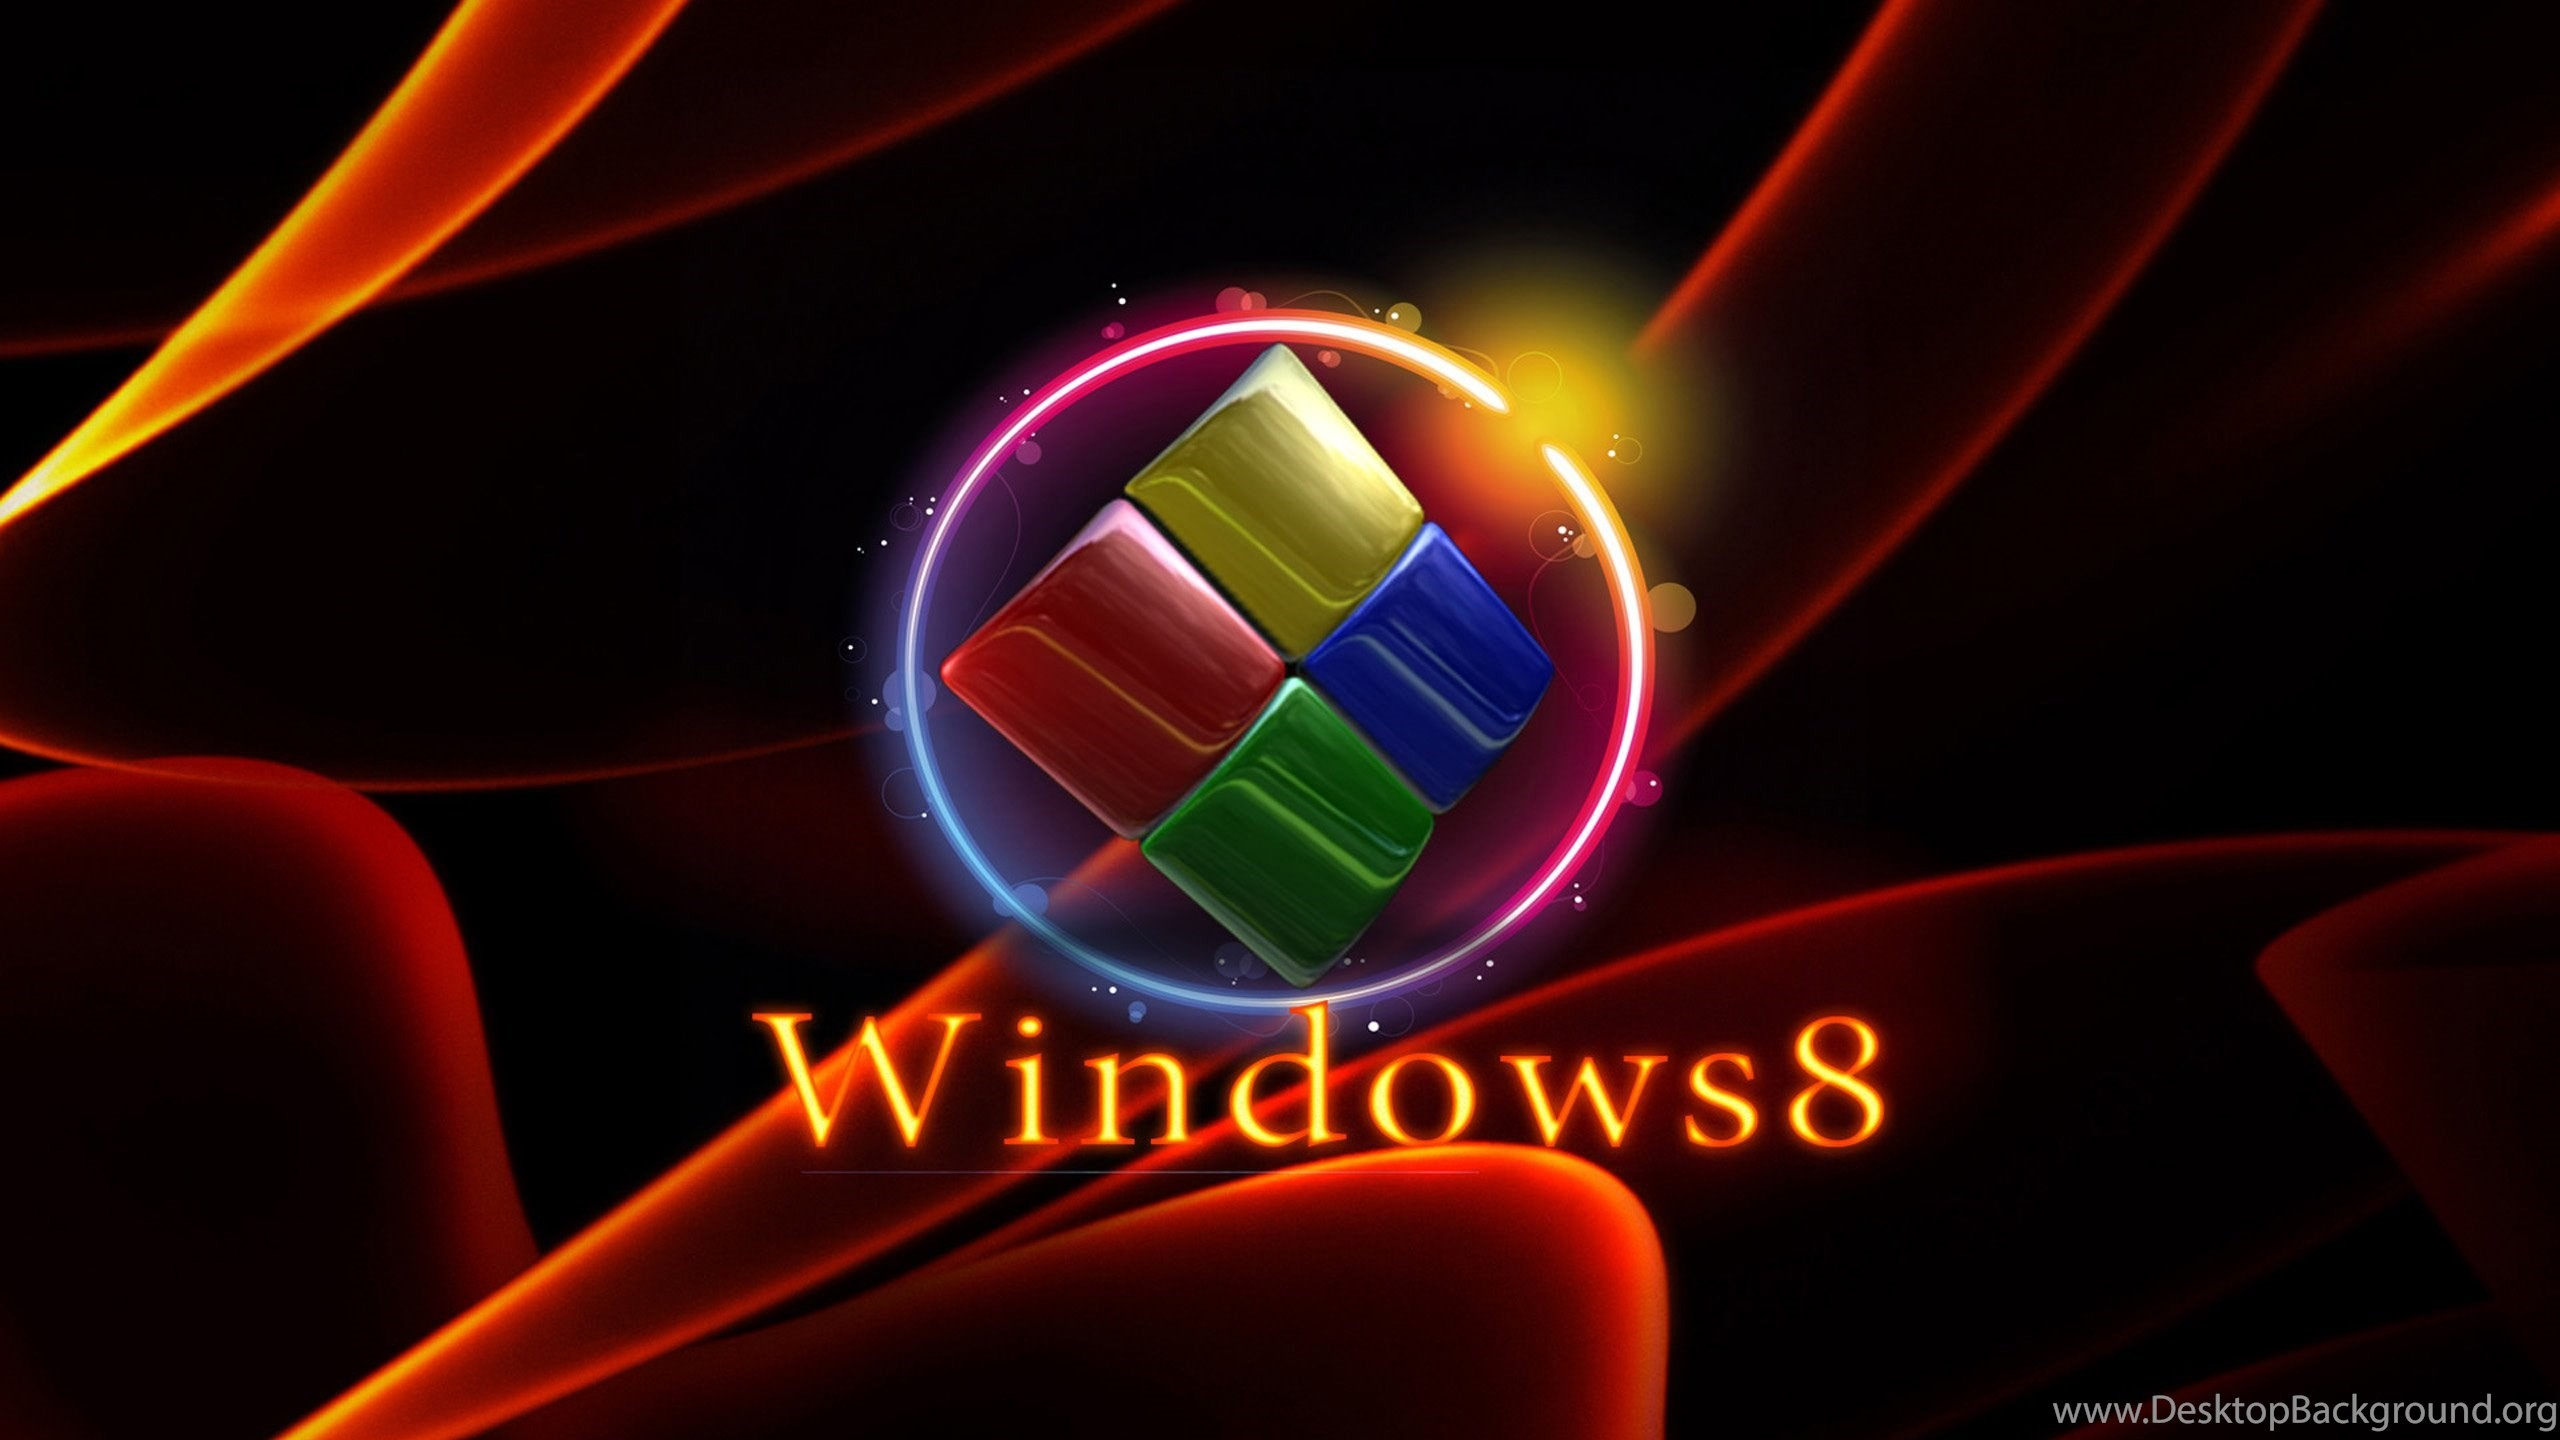 Windows 8 Wallpapers Release: Windows 8 3D Wallpaper (61+ Images